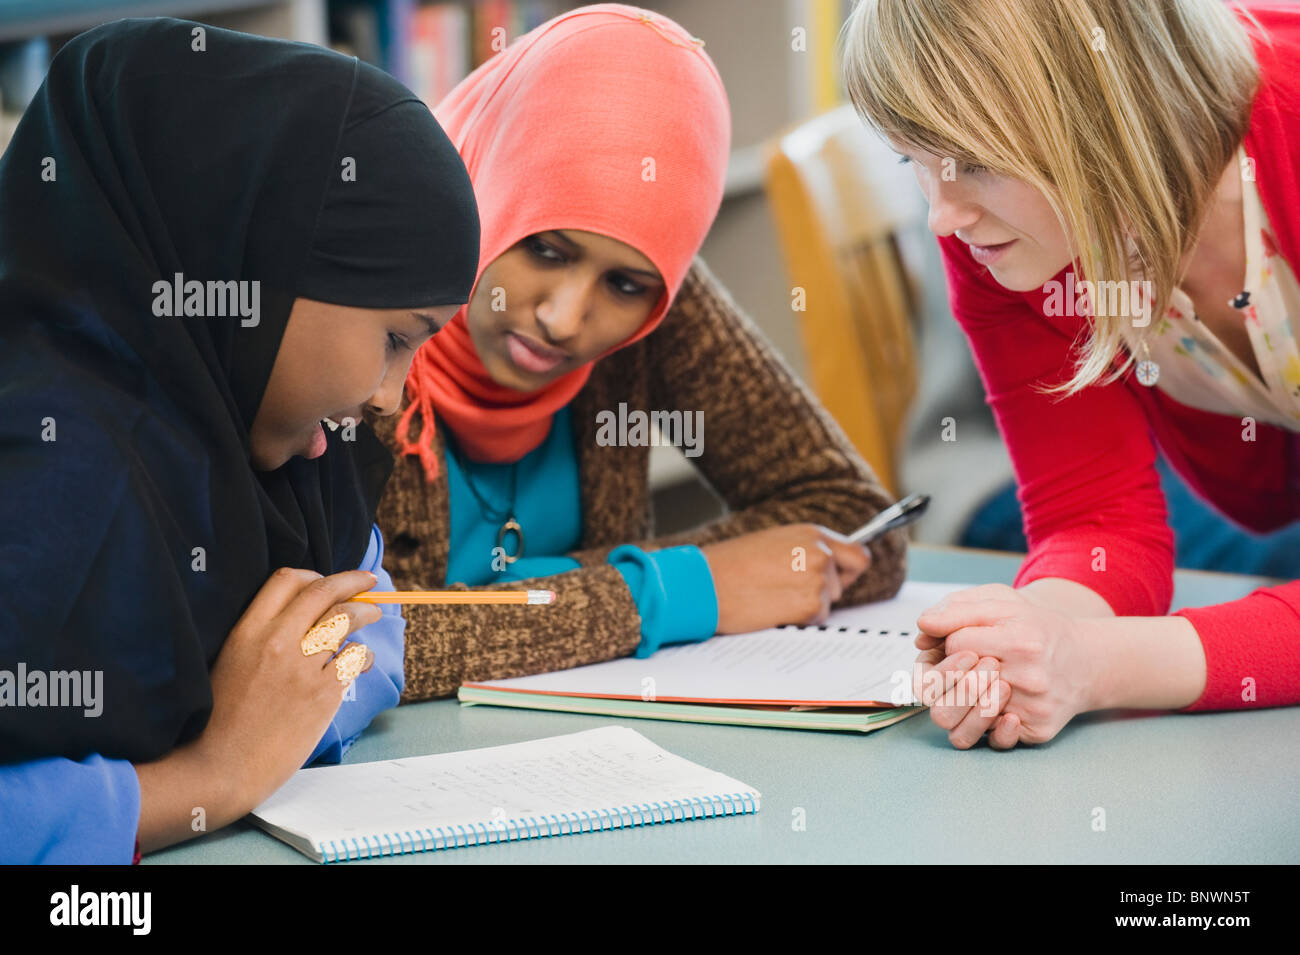 Adults students learning English as a second language - Stock Image